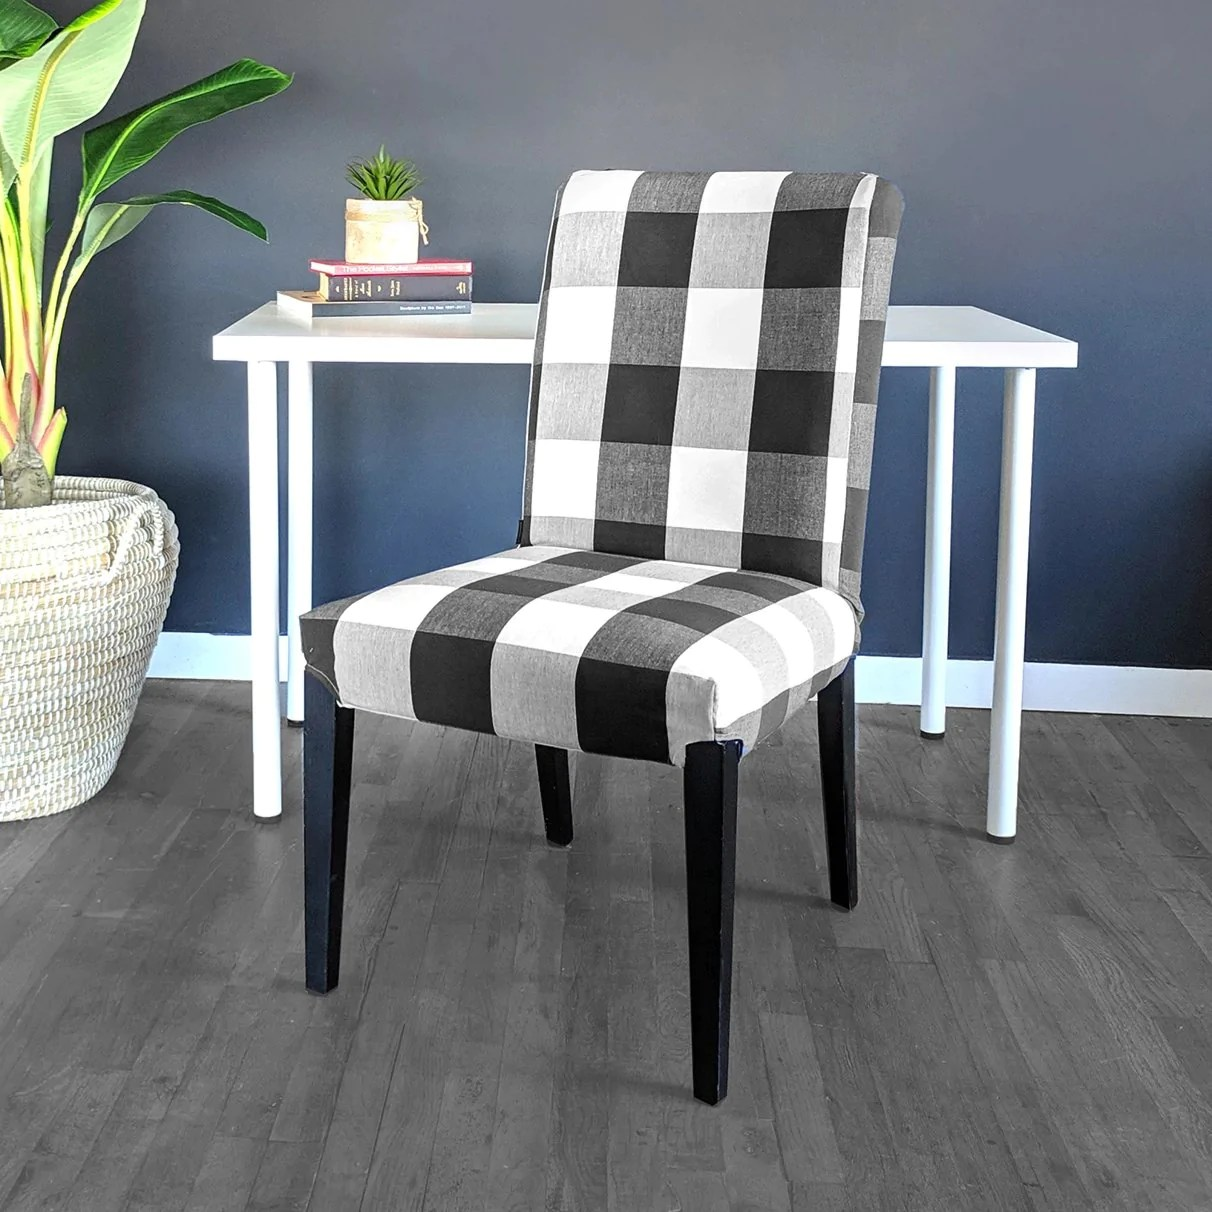 Ikea Henriksdal Dining Chair Cover Plaid Buffalo Check Black Affordable Designer Custom Handmade Trendy Fashionable Locally Made High Quality